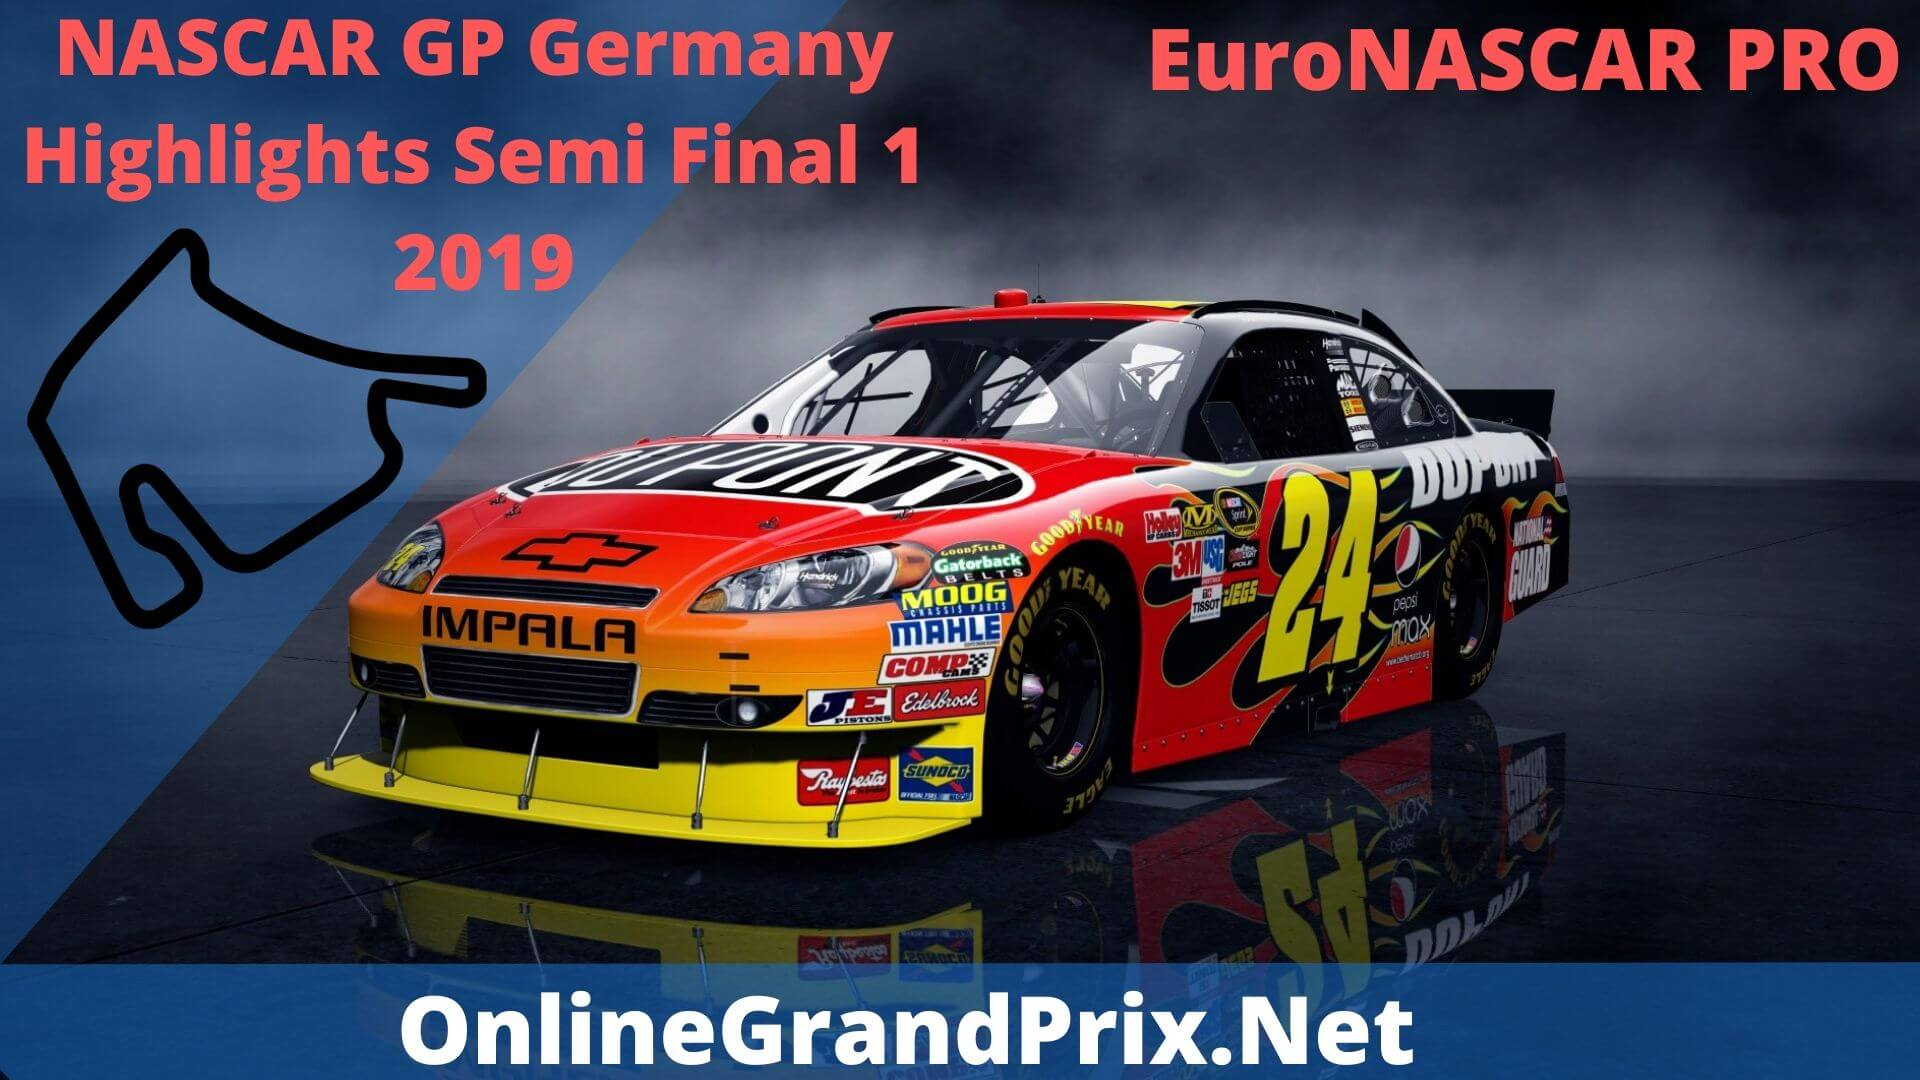 NASCAR GP Germany Semi Final 1 Highlights 2019